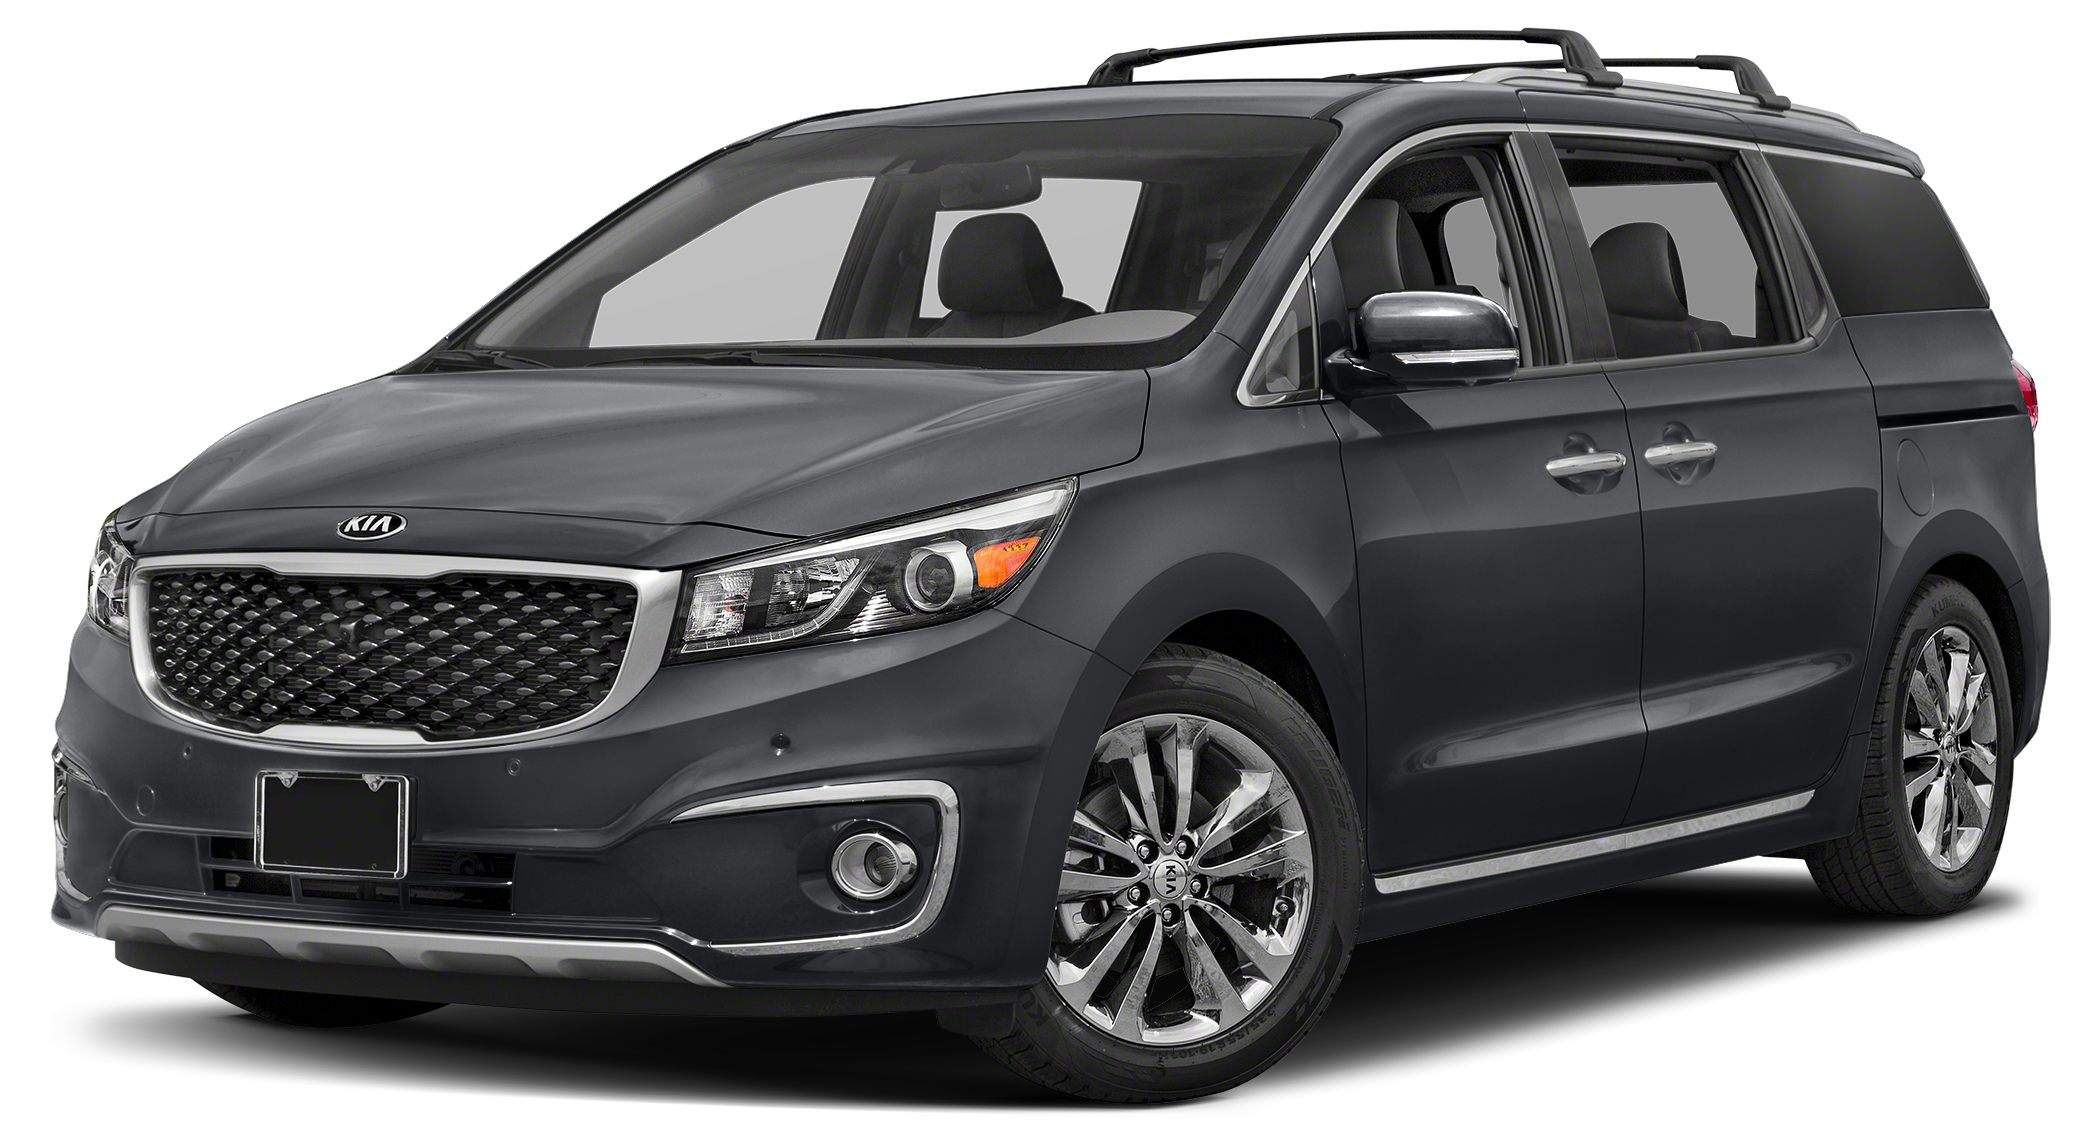 2018 Kia Sedona SX Limited All the right toys Own the road at every turn Lower price Was 44